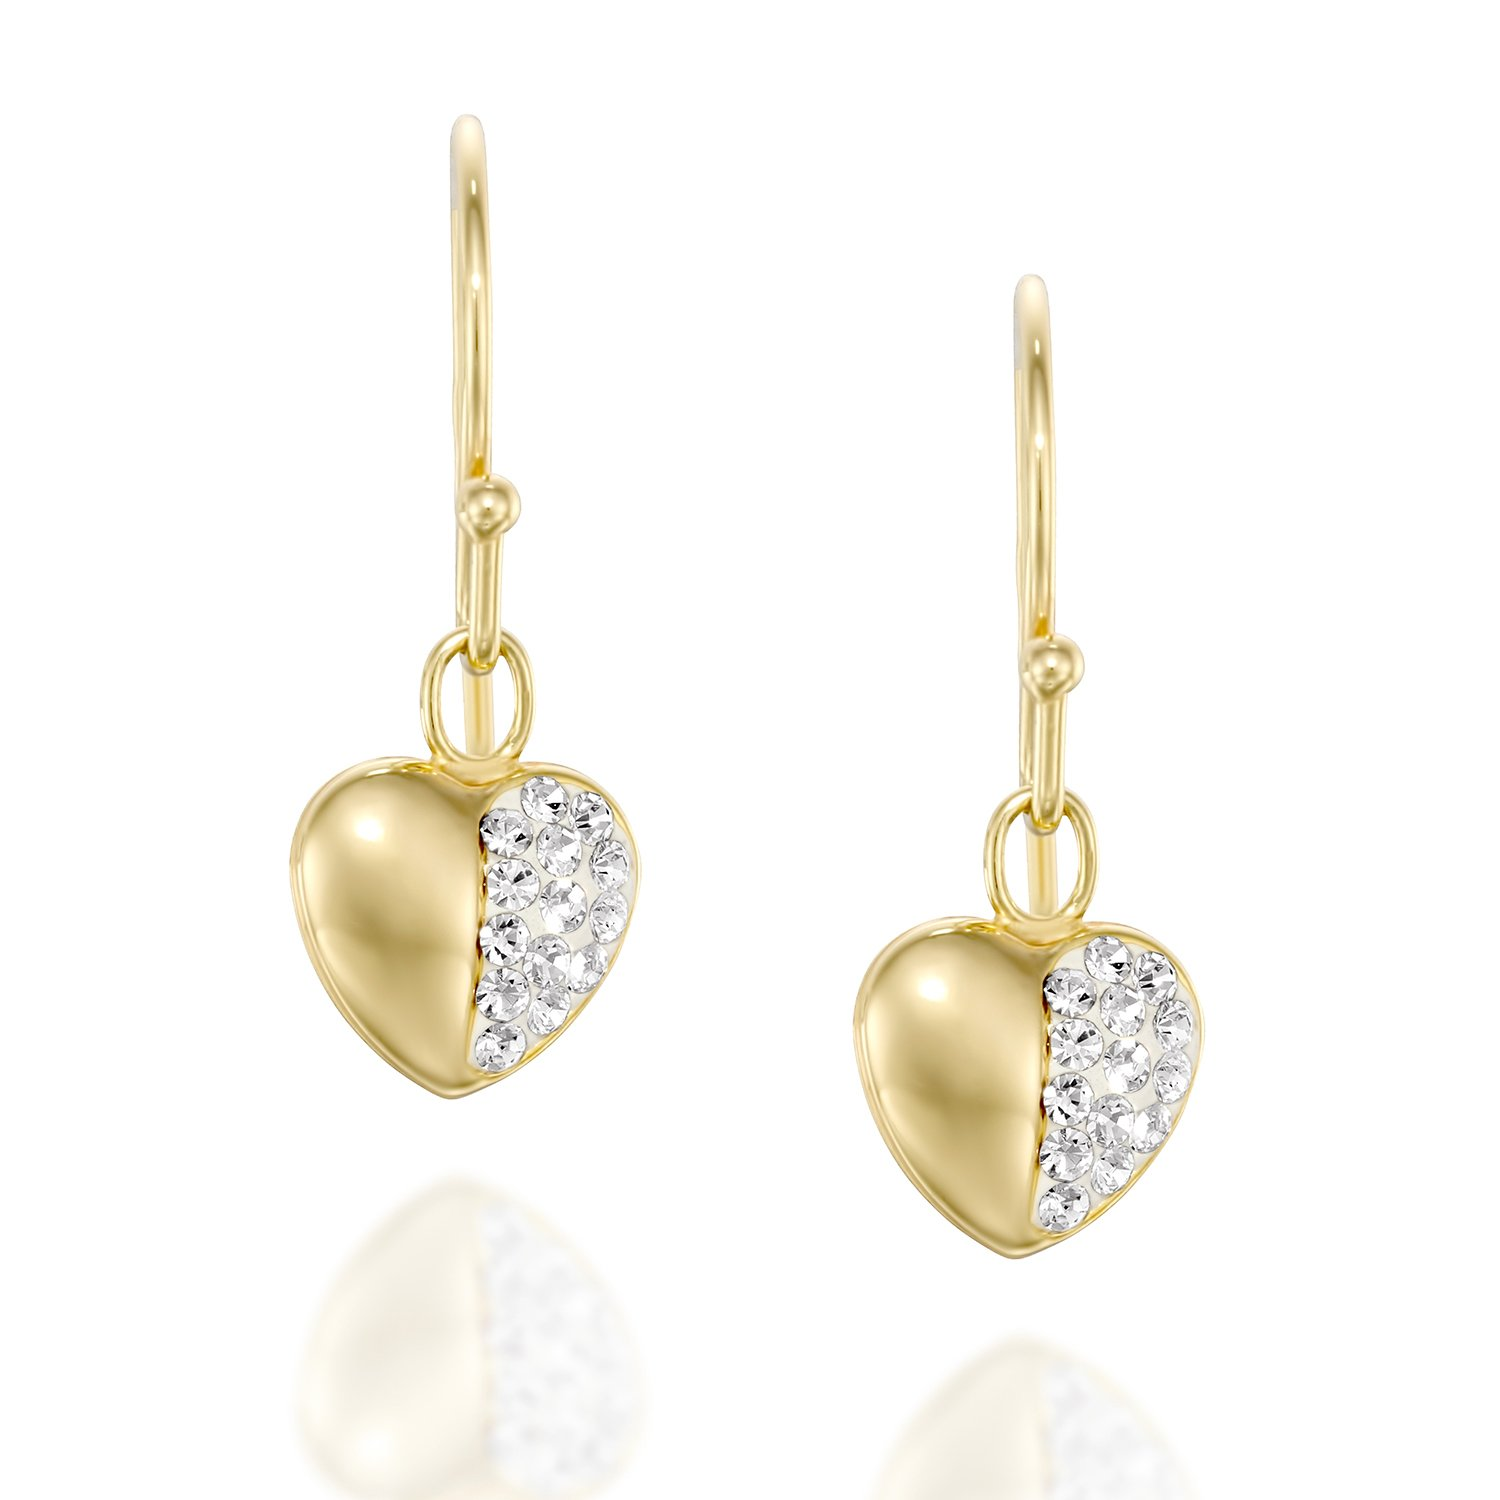 18k Gold Plated Pave Heart Earrings With Original Swarovski Crystals Great Gift for Girls Teens Yalon STERA-X1005